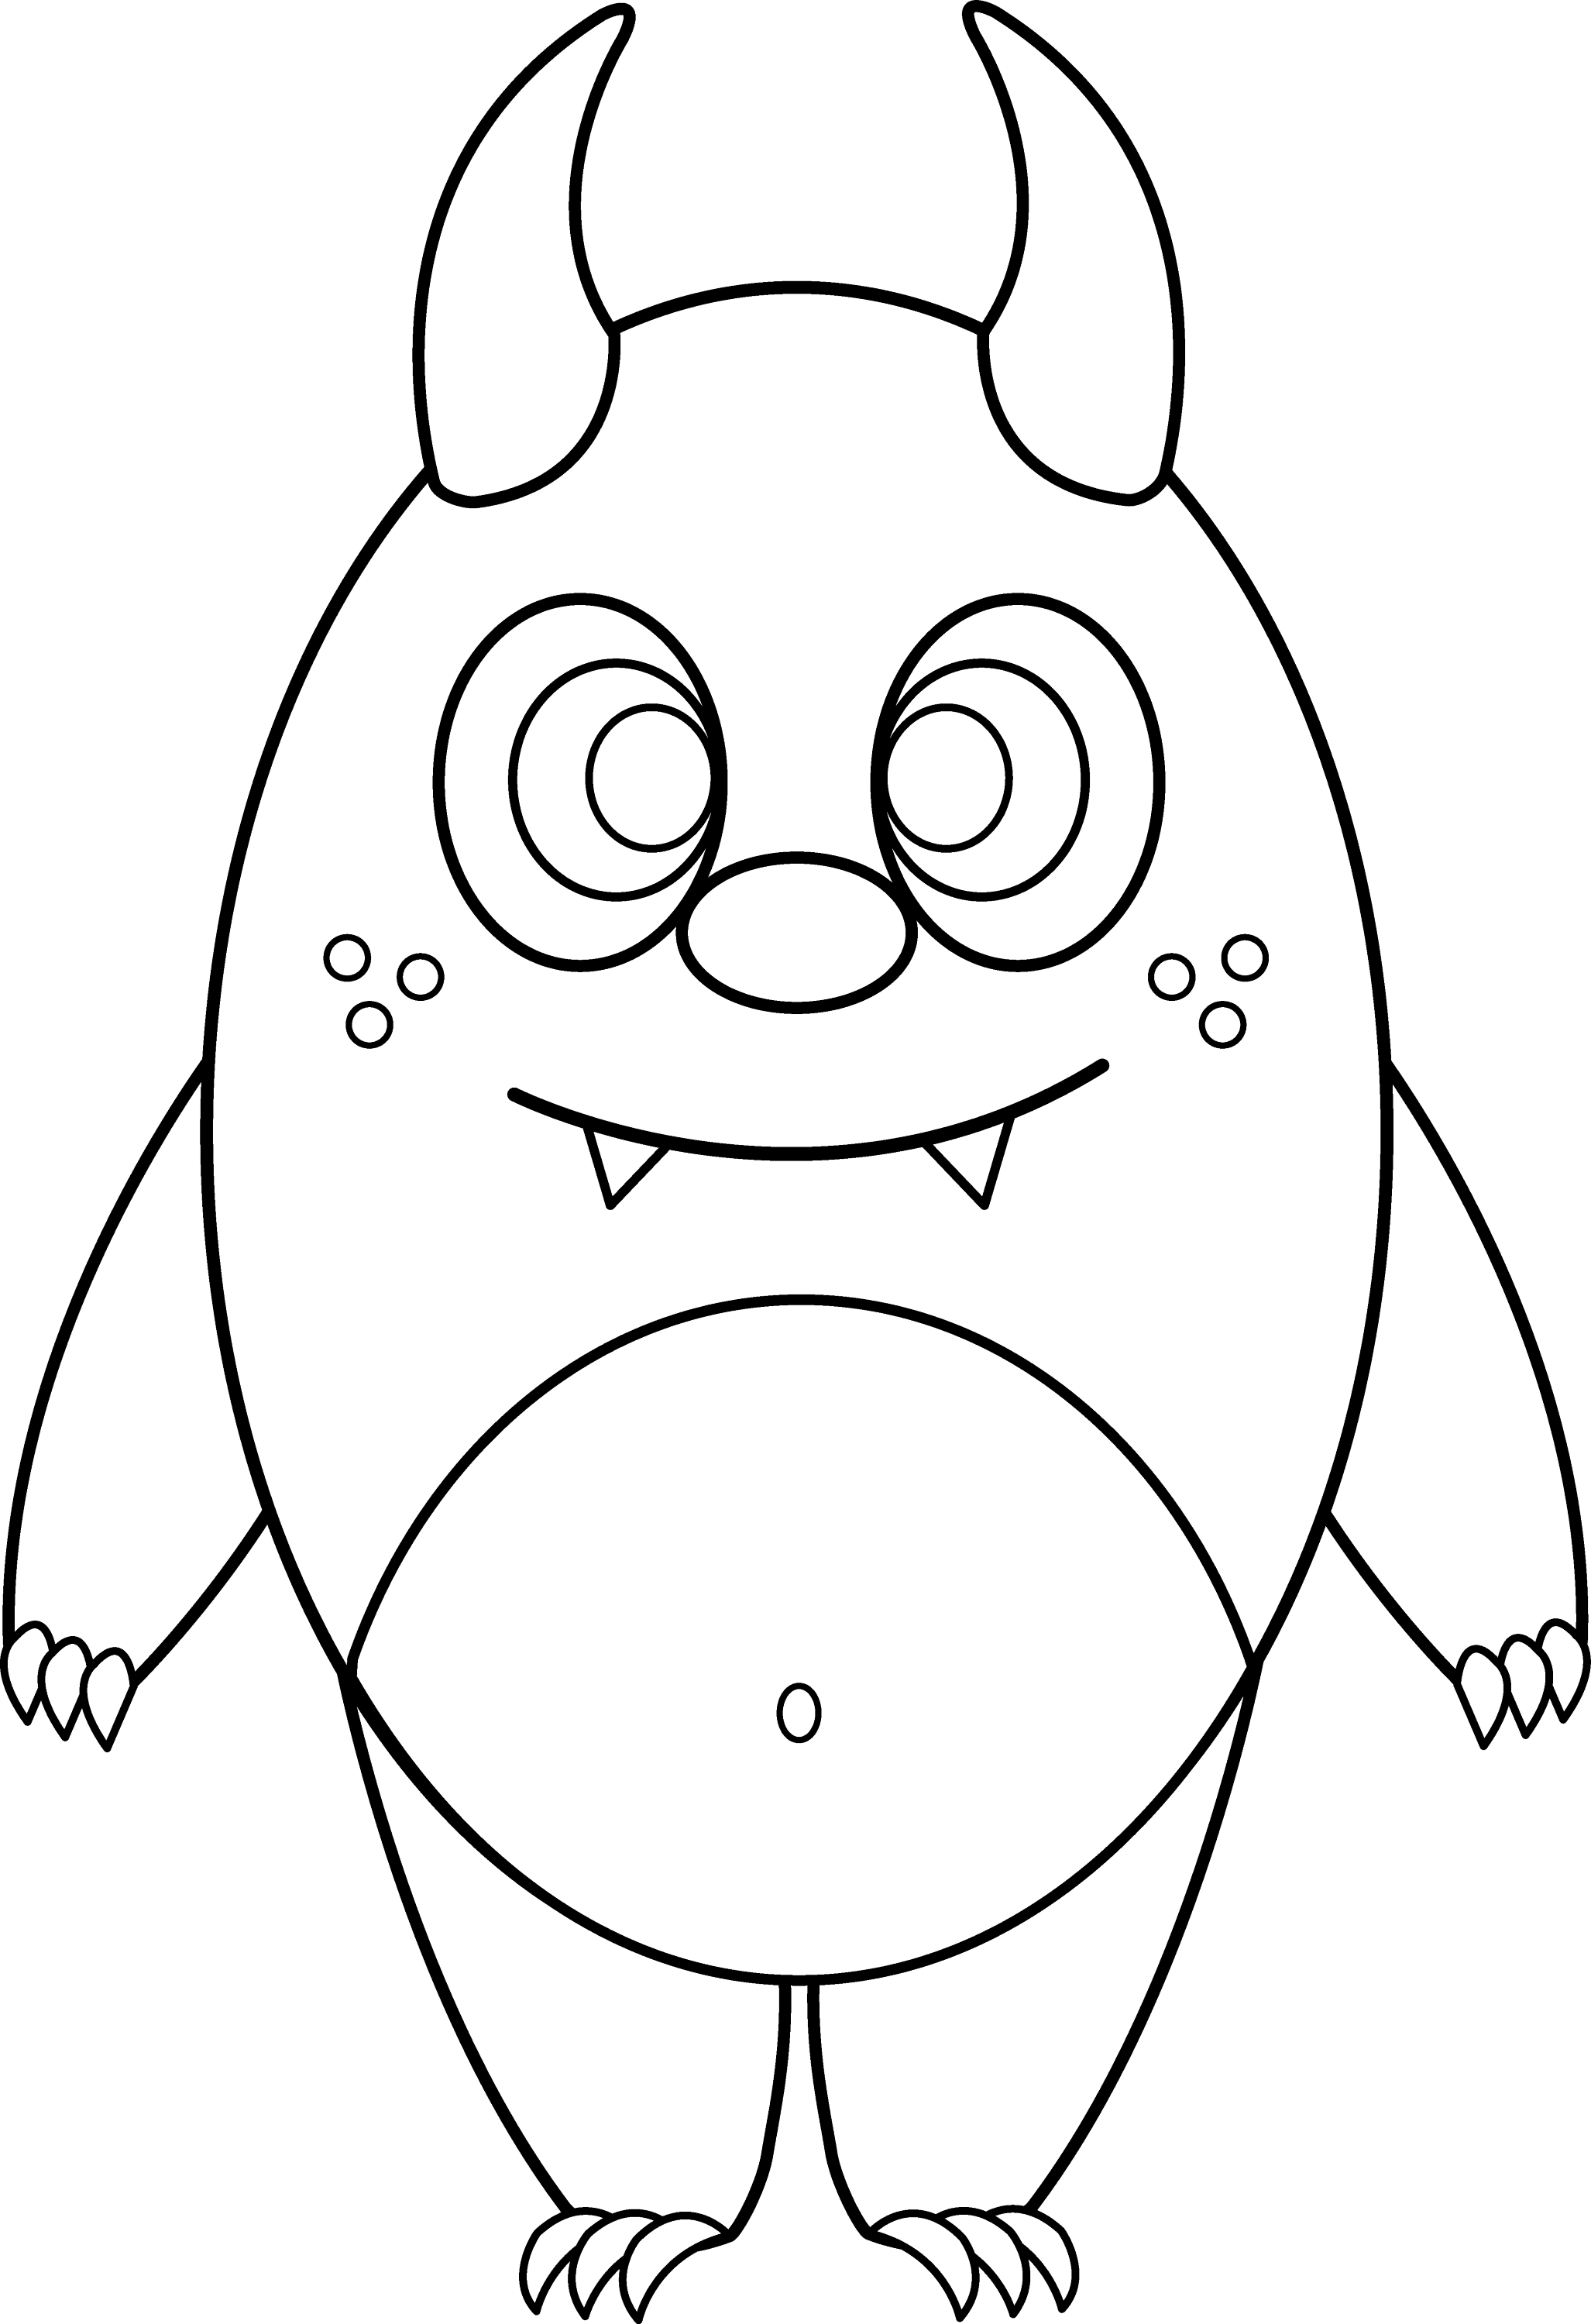 Line Drawing Monster : Silly little monster coloring page free clip art